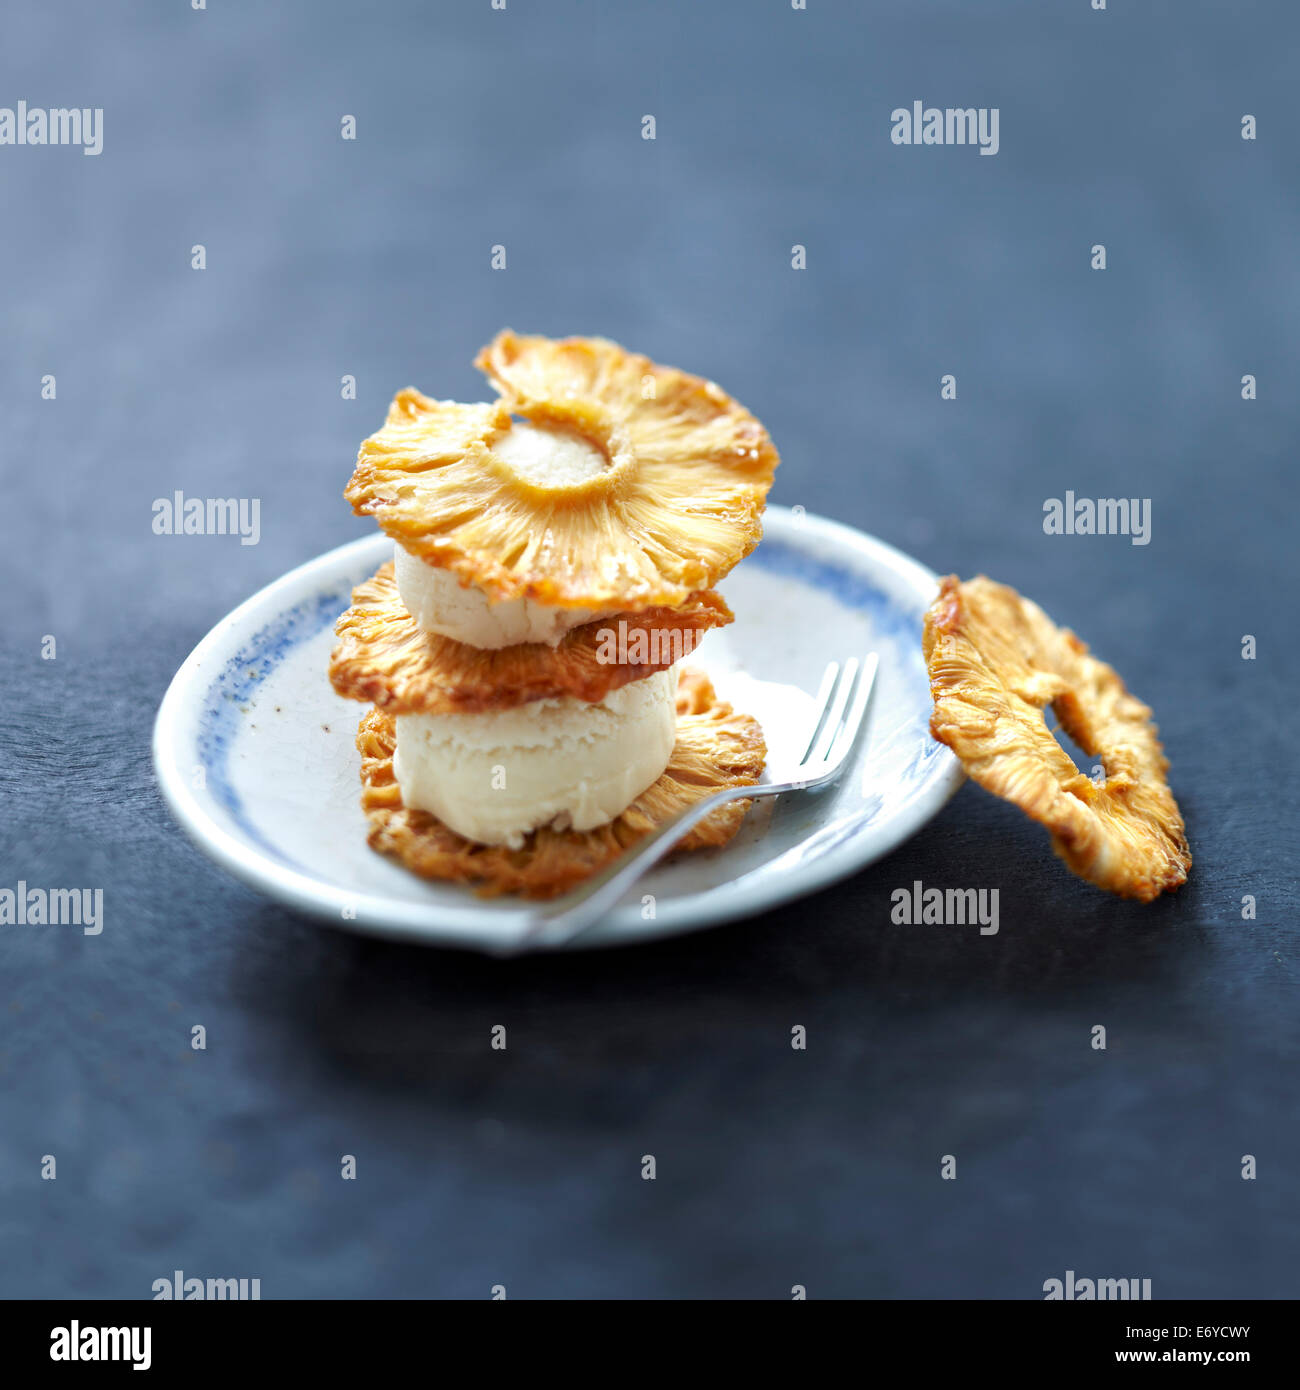 Fabrication d'ananas frit et glace coco dessert Photo Stock